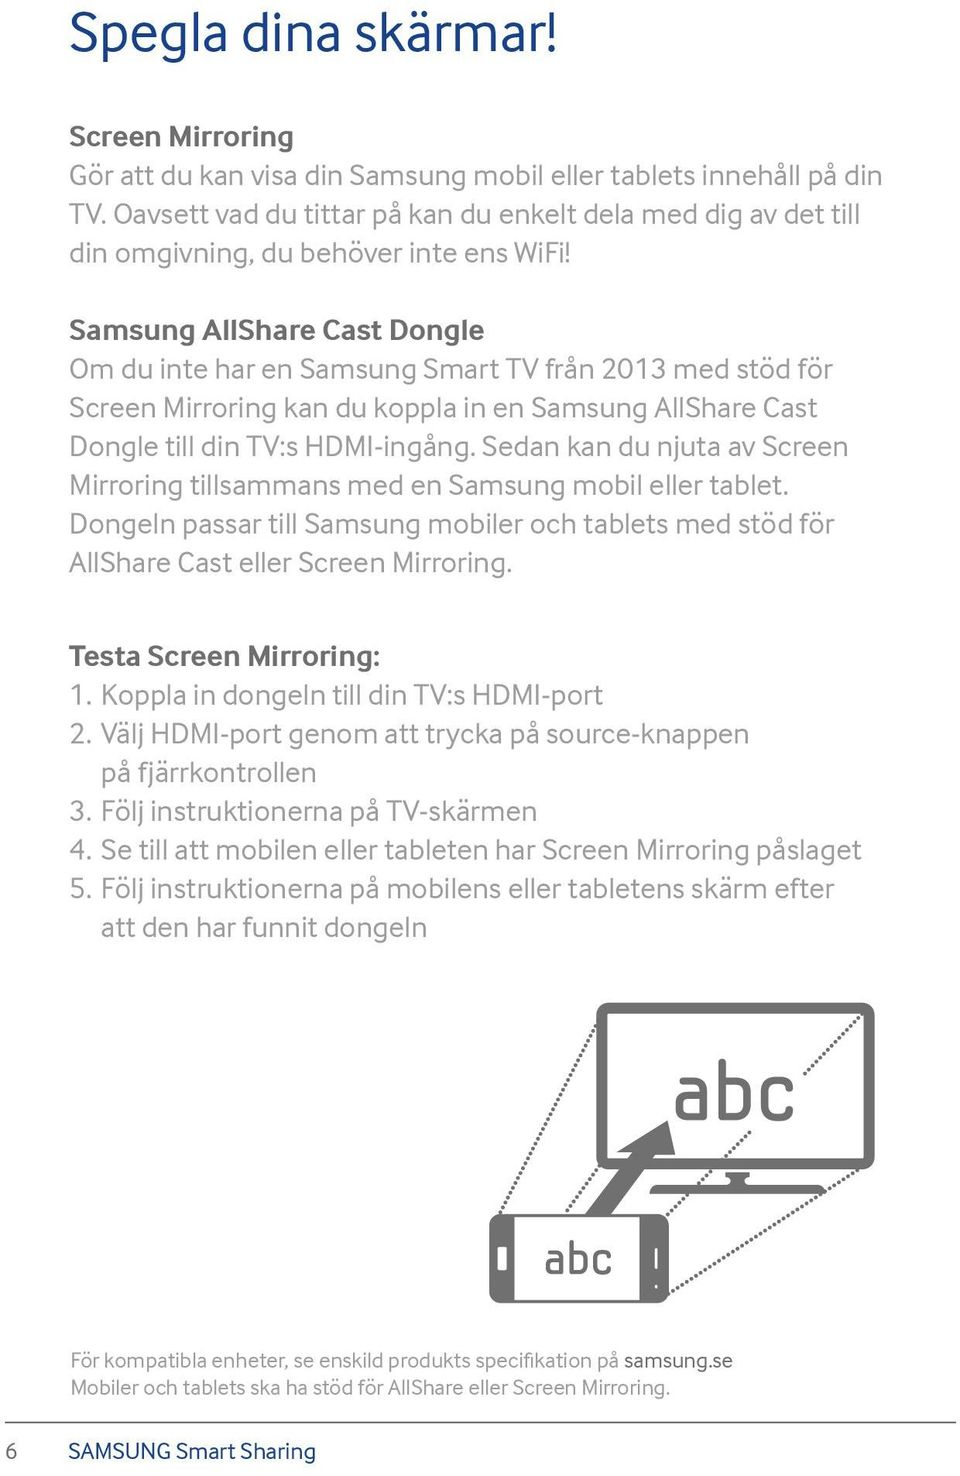 Samsung AllShare Cast Dongle Om du inte har en Samsung Smart TV från 2013 med stöd för Screen Mirroring kan du koppla in en Samsung AllShare Cast Dongle till din TV:s HDMI-ingång.